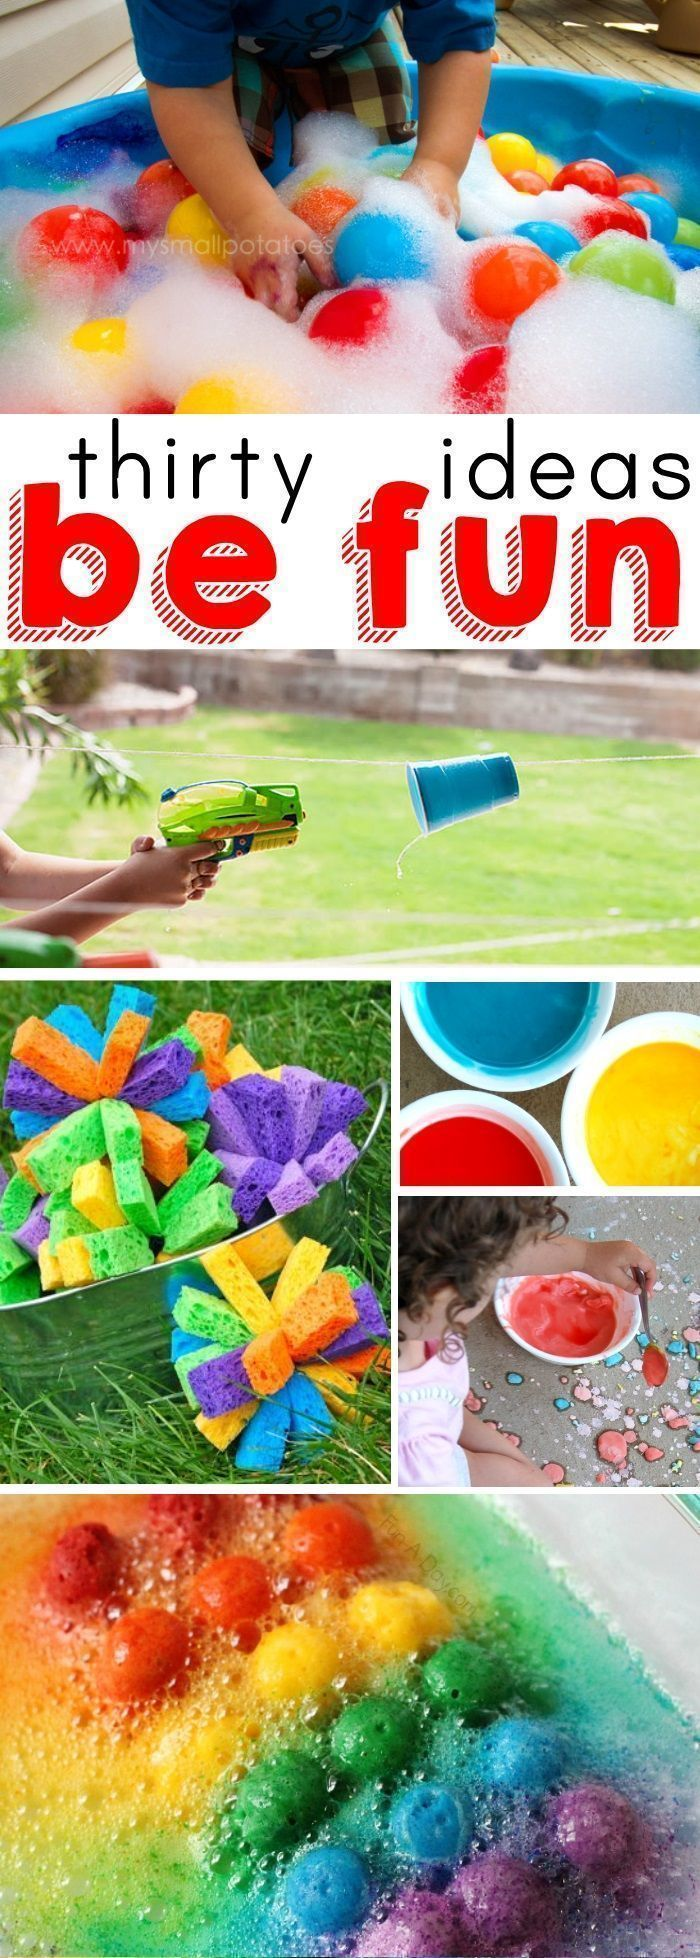 Crazy Cool Activity Ideas for Summer